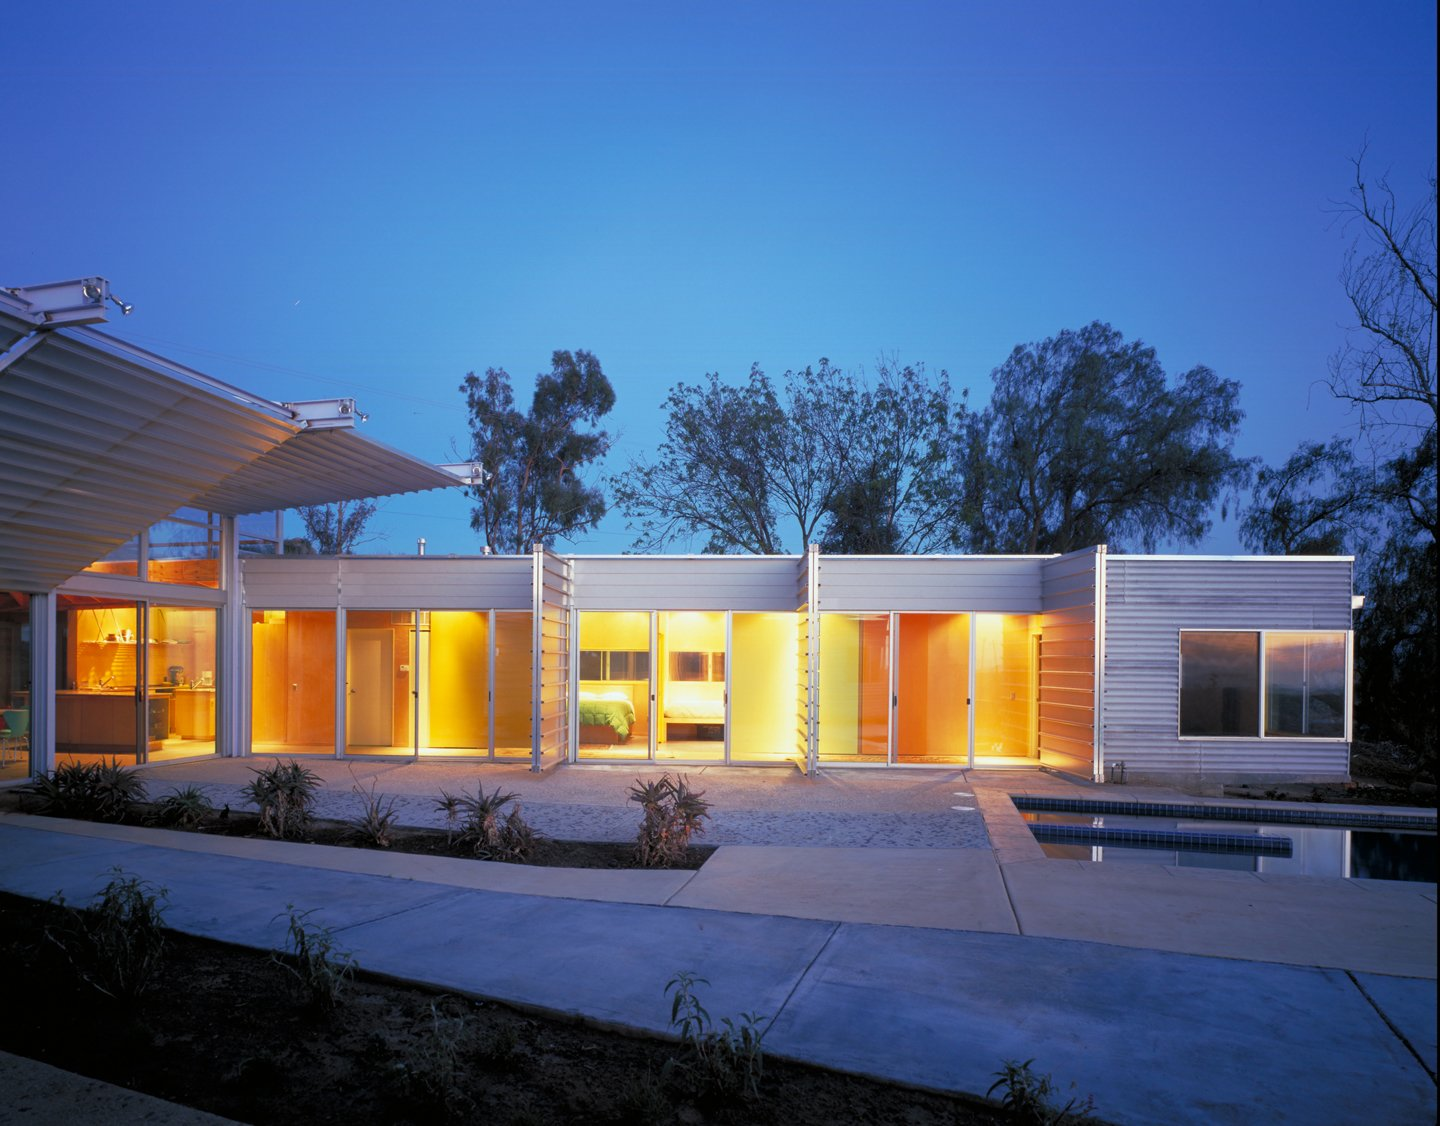 #exterior #outside #outdoor #landscape #eco #green #sustainable #ValleyCenter #California #KevinDalyArchitects  Valley Center House